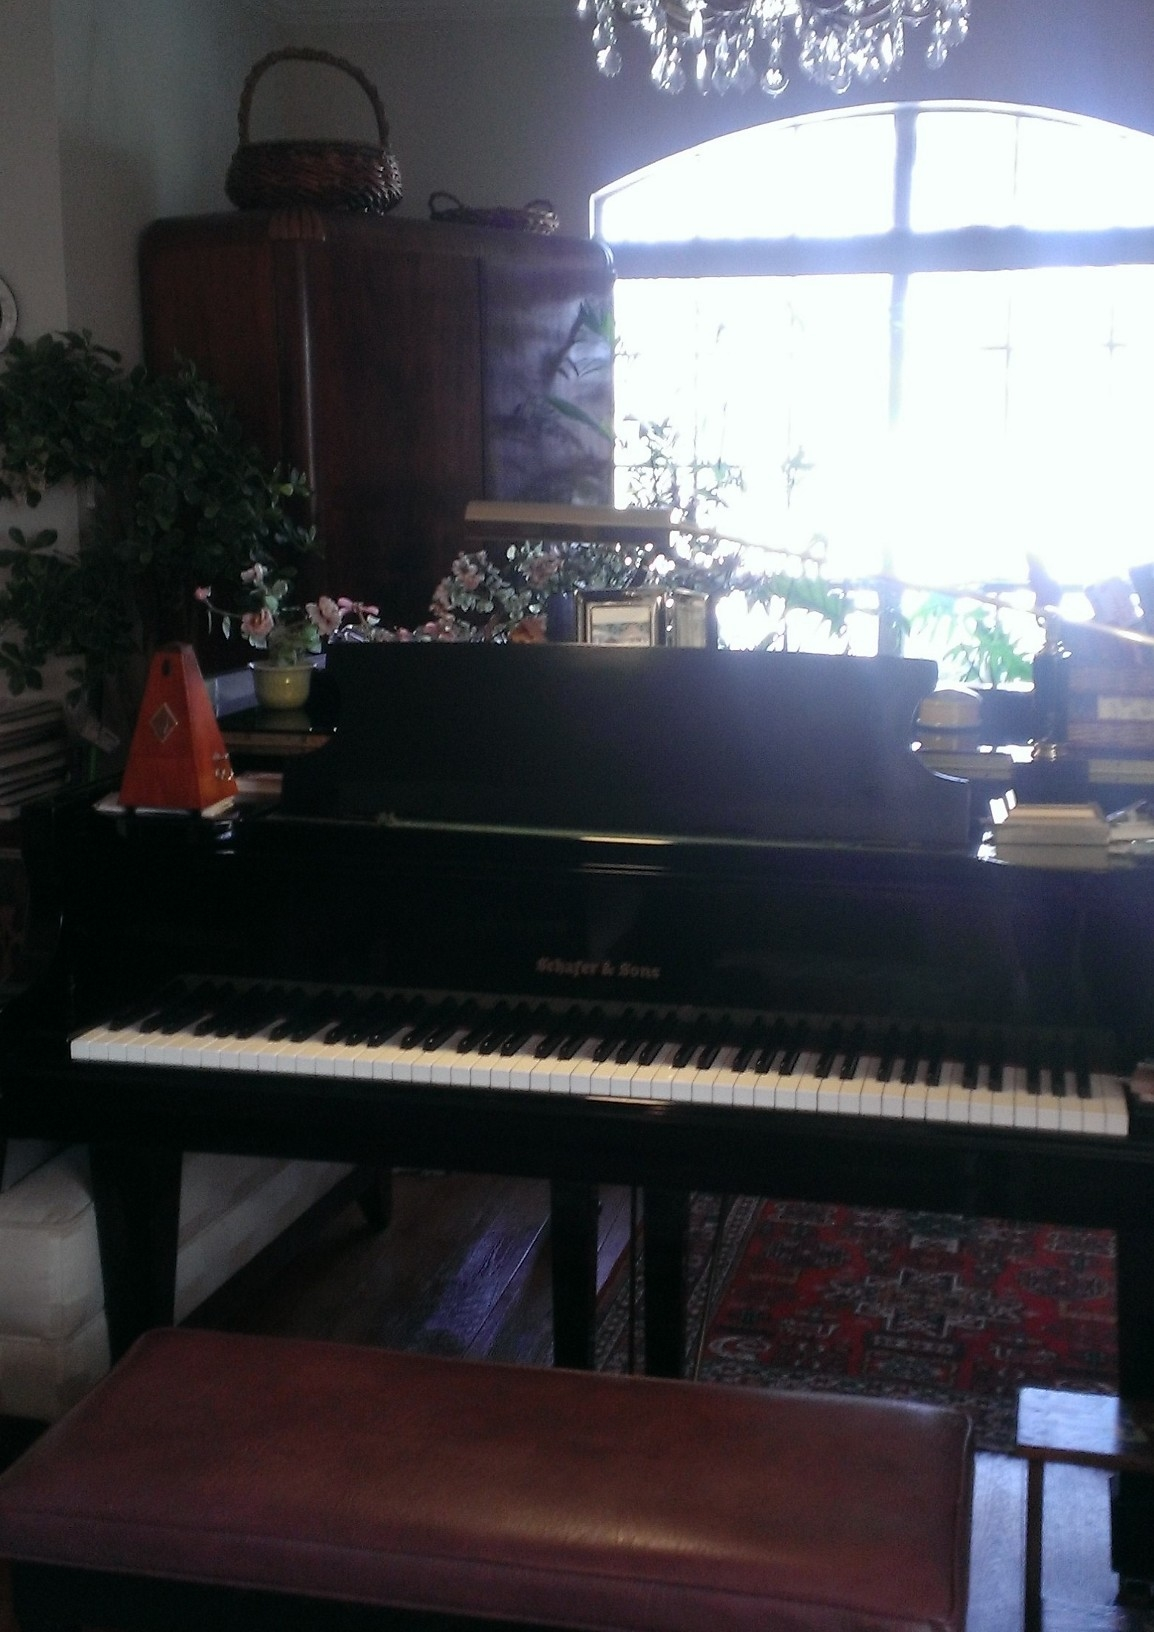 The Mclean Piano Studio